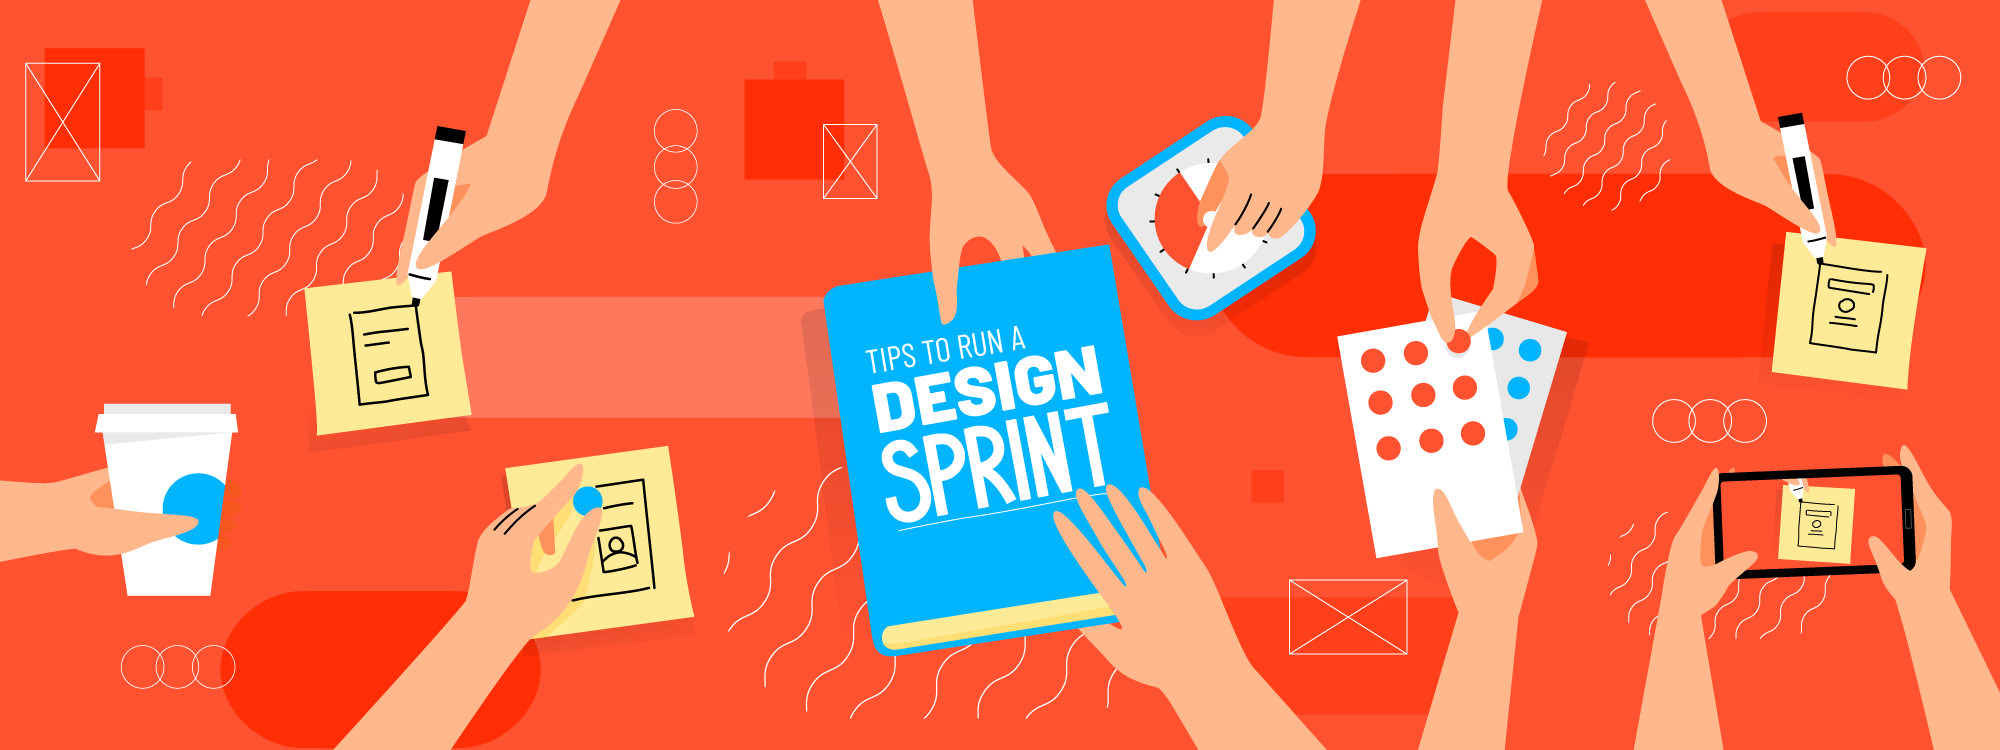 DESIGN SPRINT: Conducting an Effective Methodology